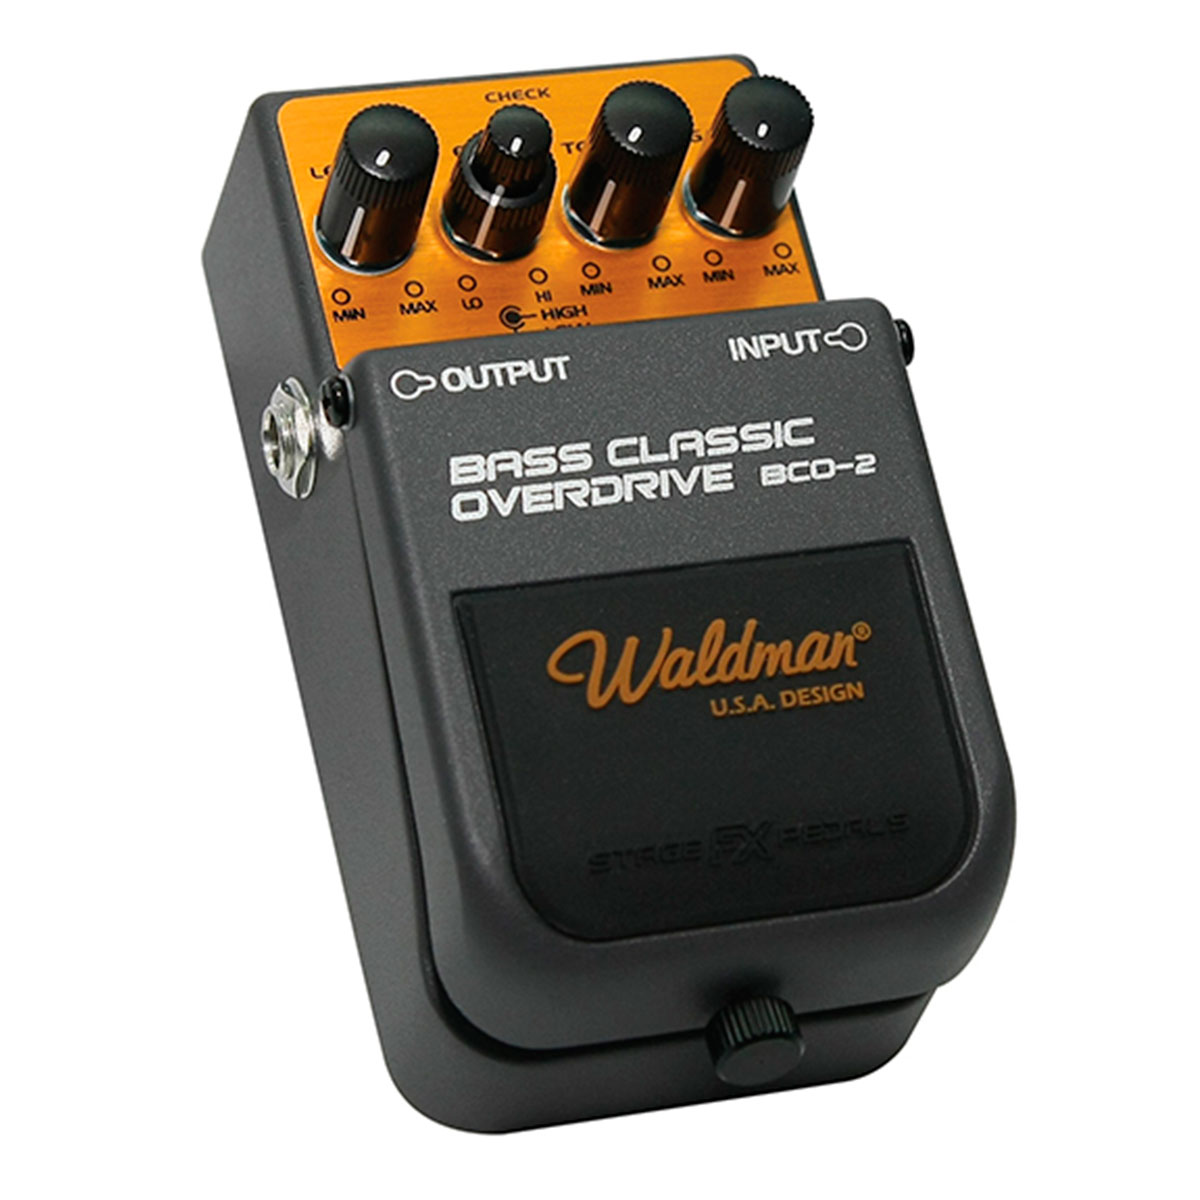 BCO2 - Pedal Contrabaixo Bass Classic Overdrive BCO 2 - Waldman